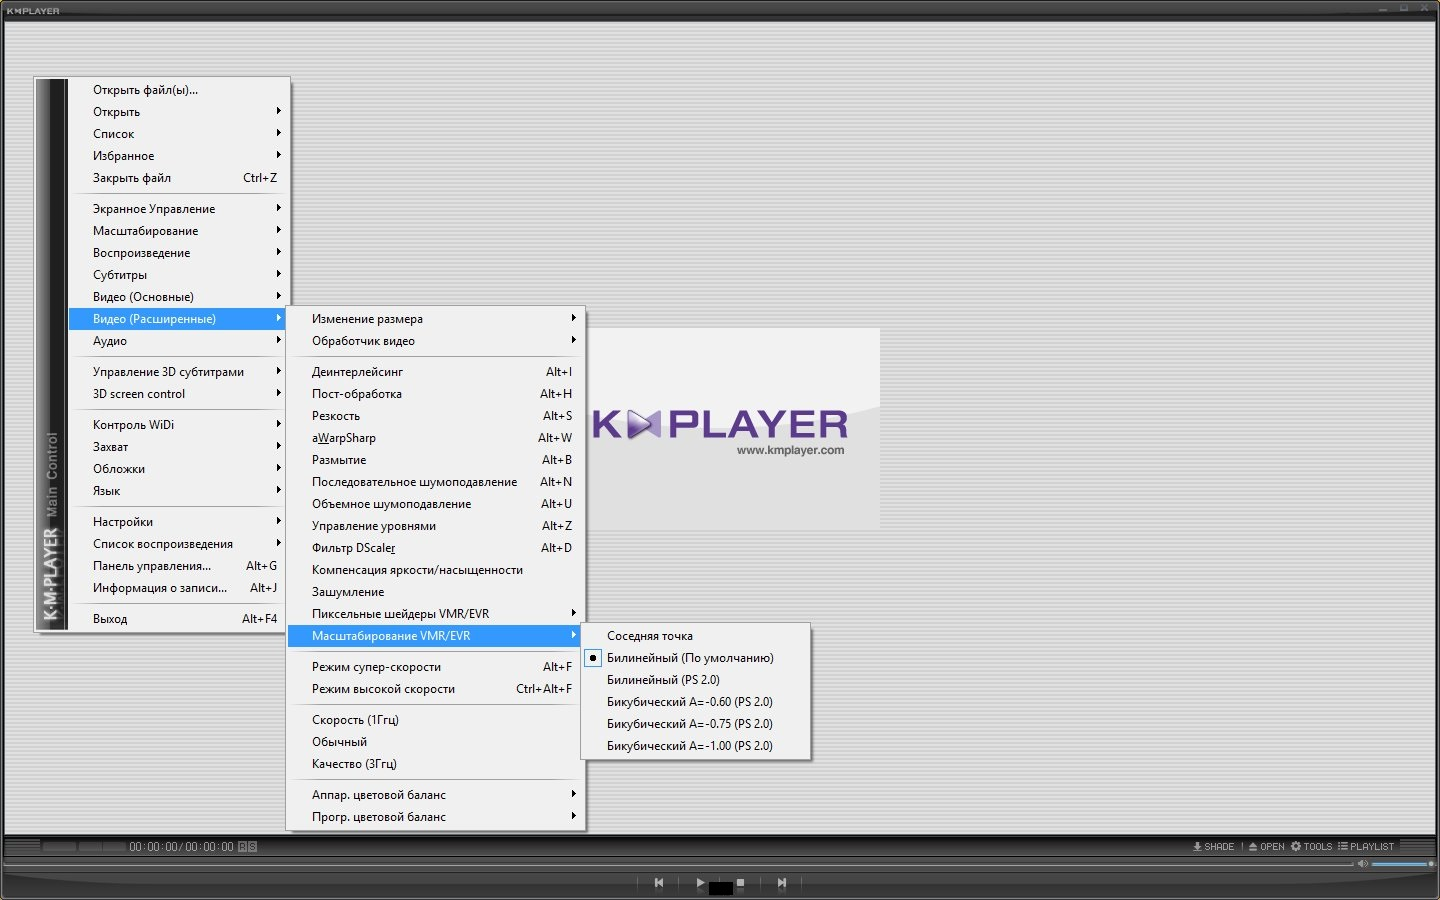 The KMPlayer 3.9.1.132 [Shareware]